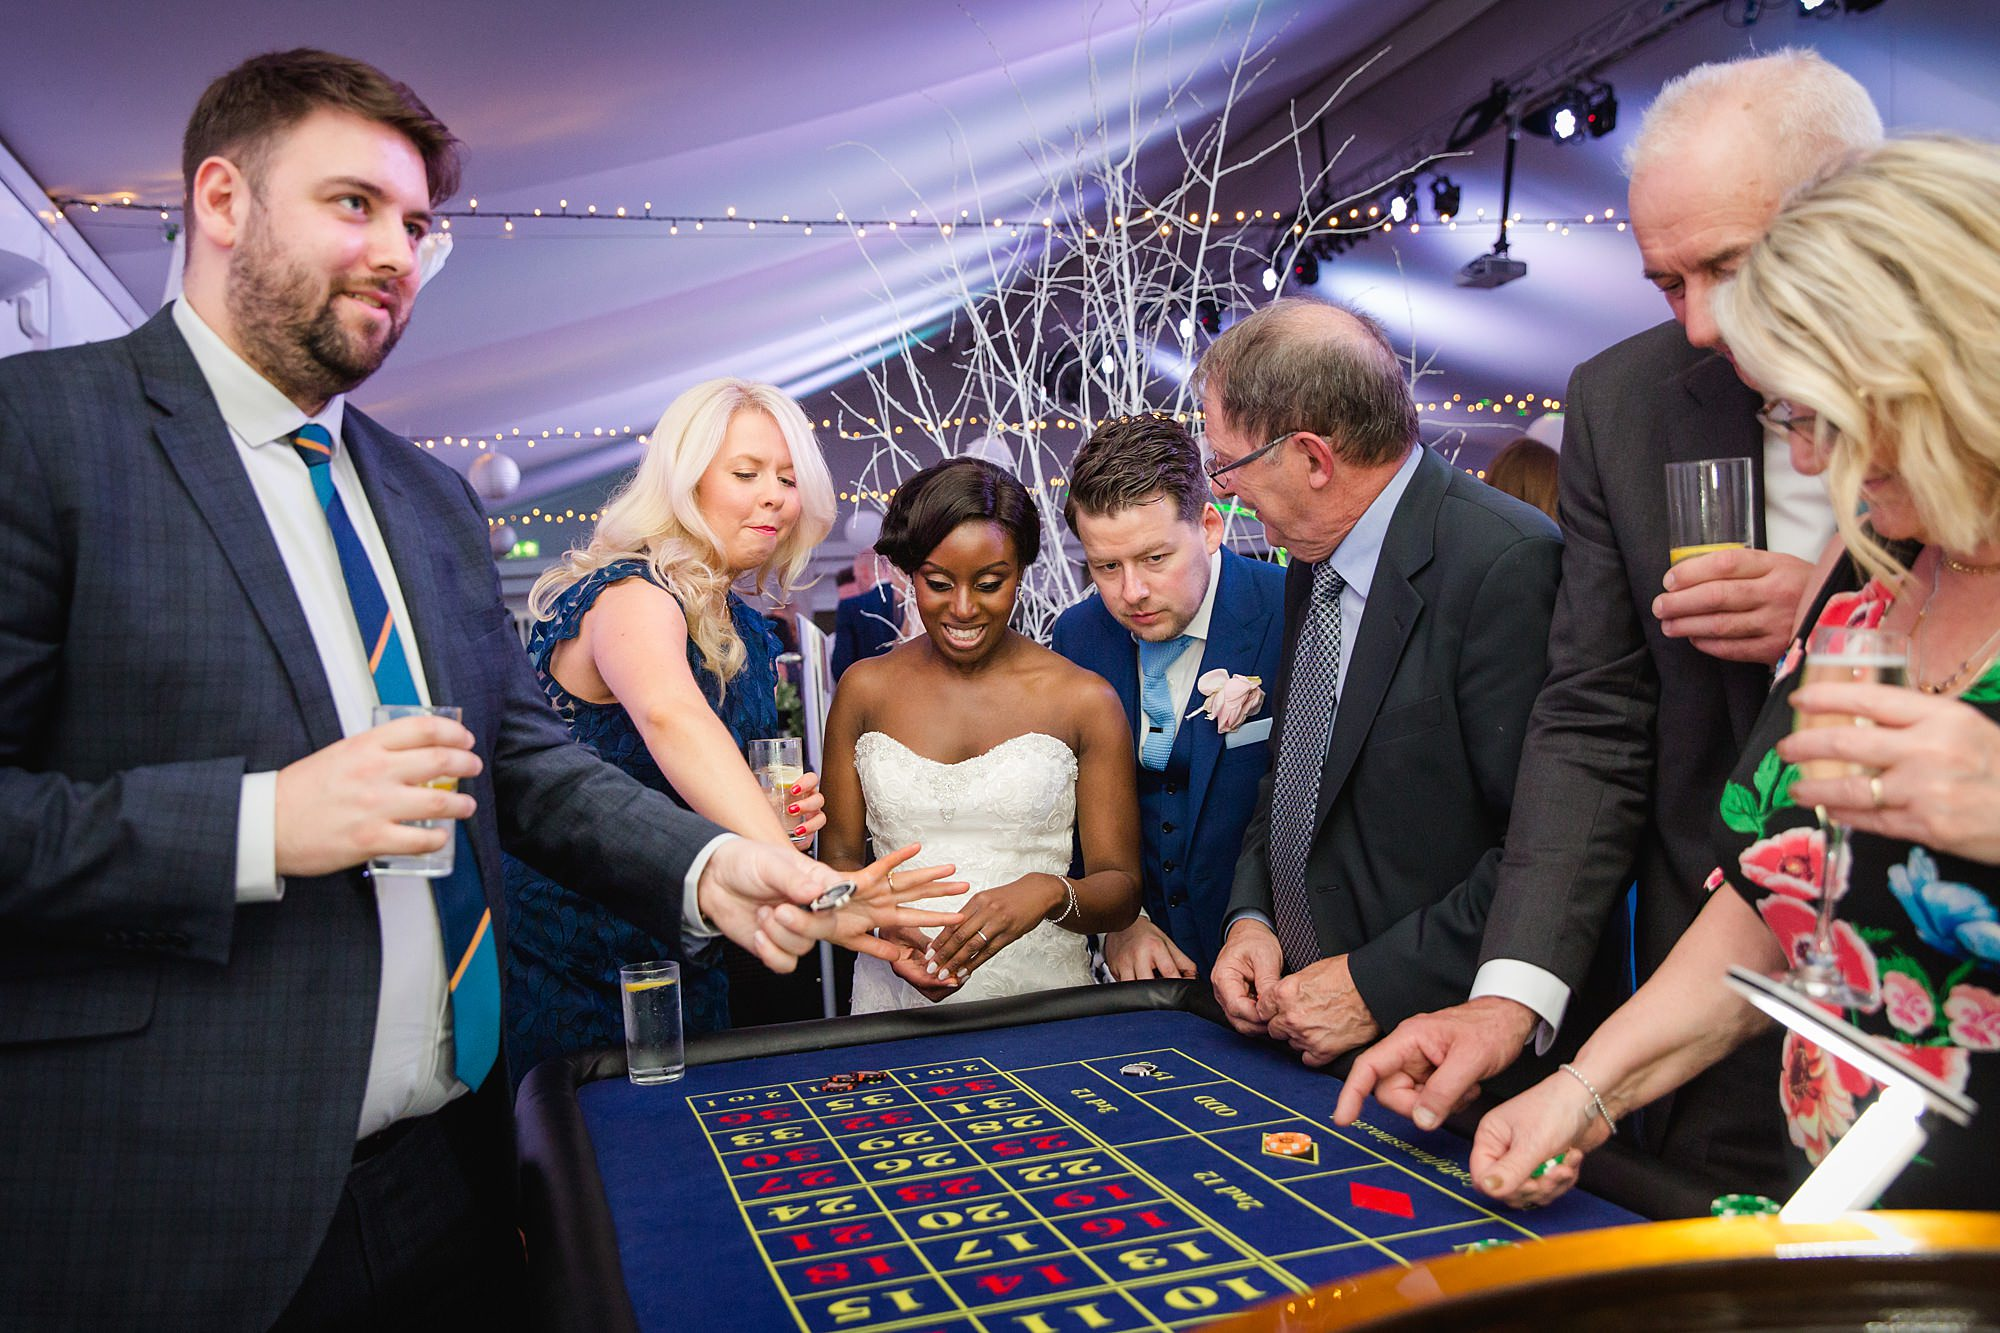 Bank of England Sports Centre wedding bride at roulette table